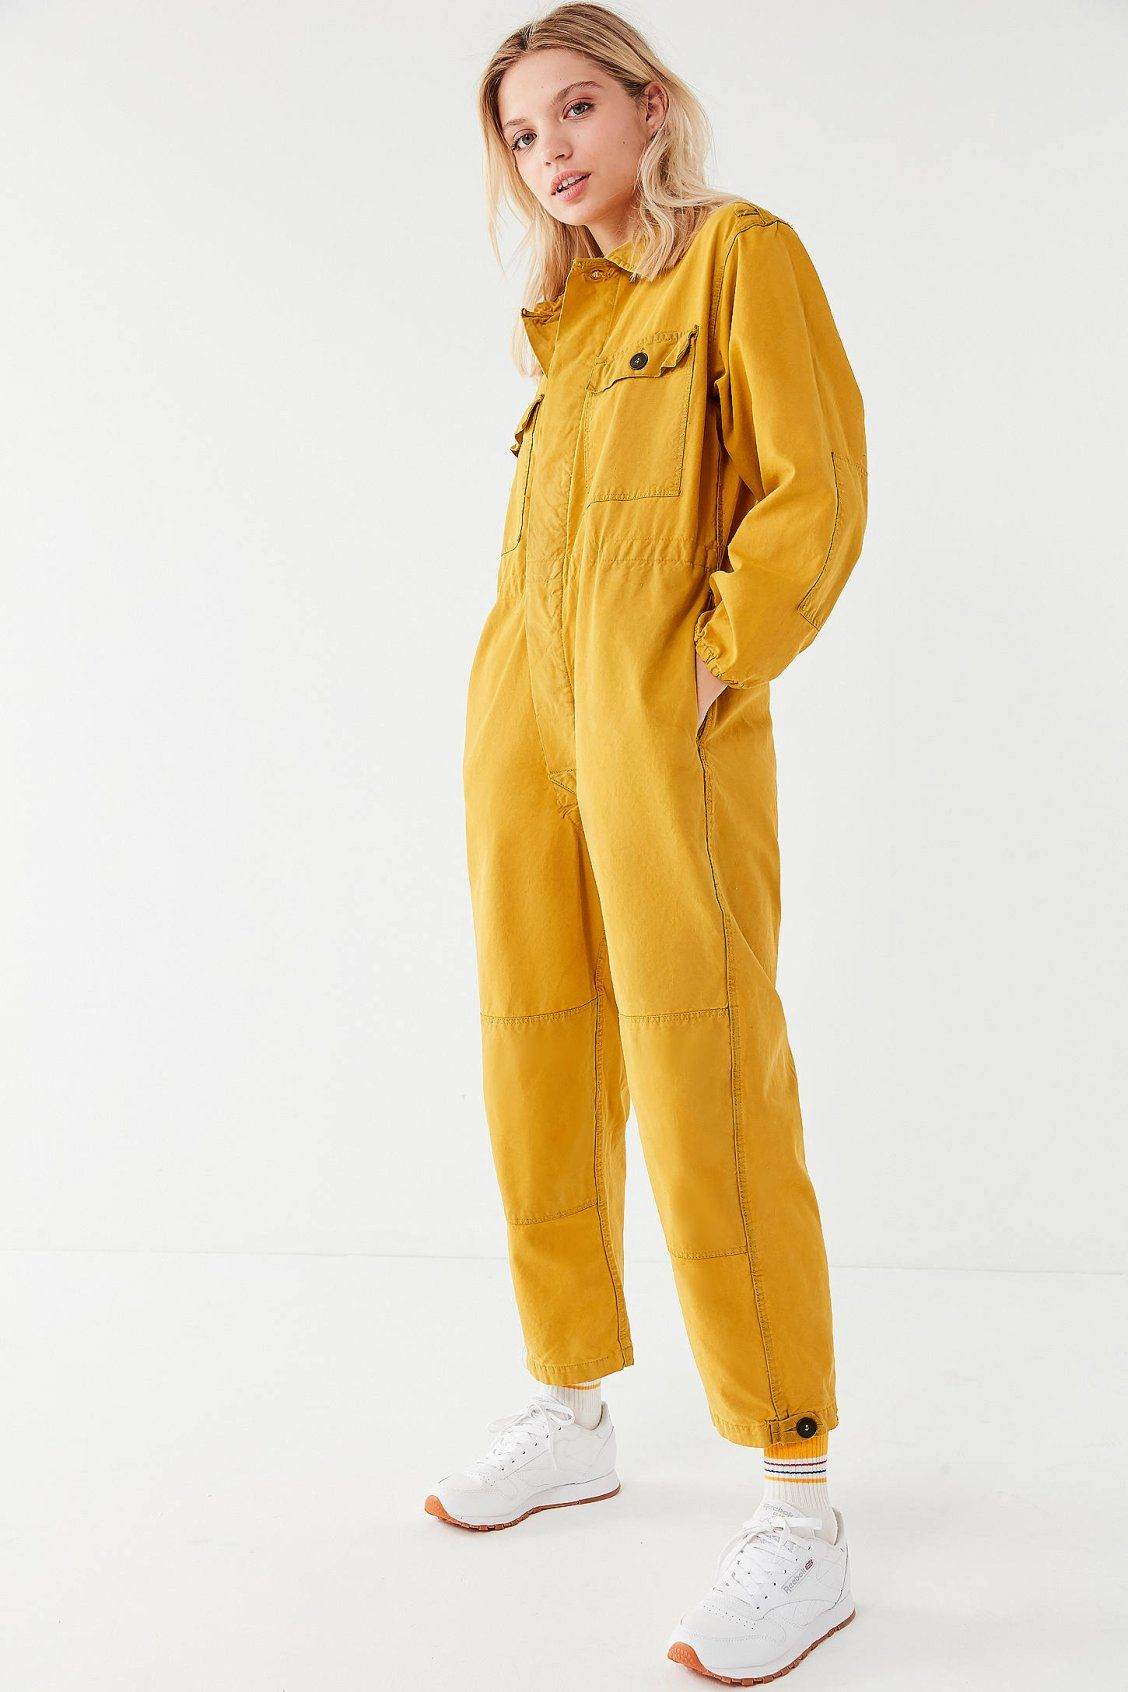 331c32711a1 Rompers + Jumpsuits for Women. Vintage Overdyed Jumpsuit